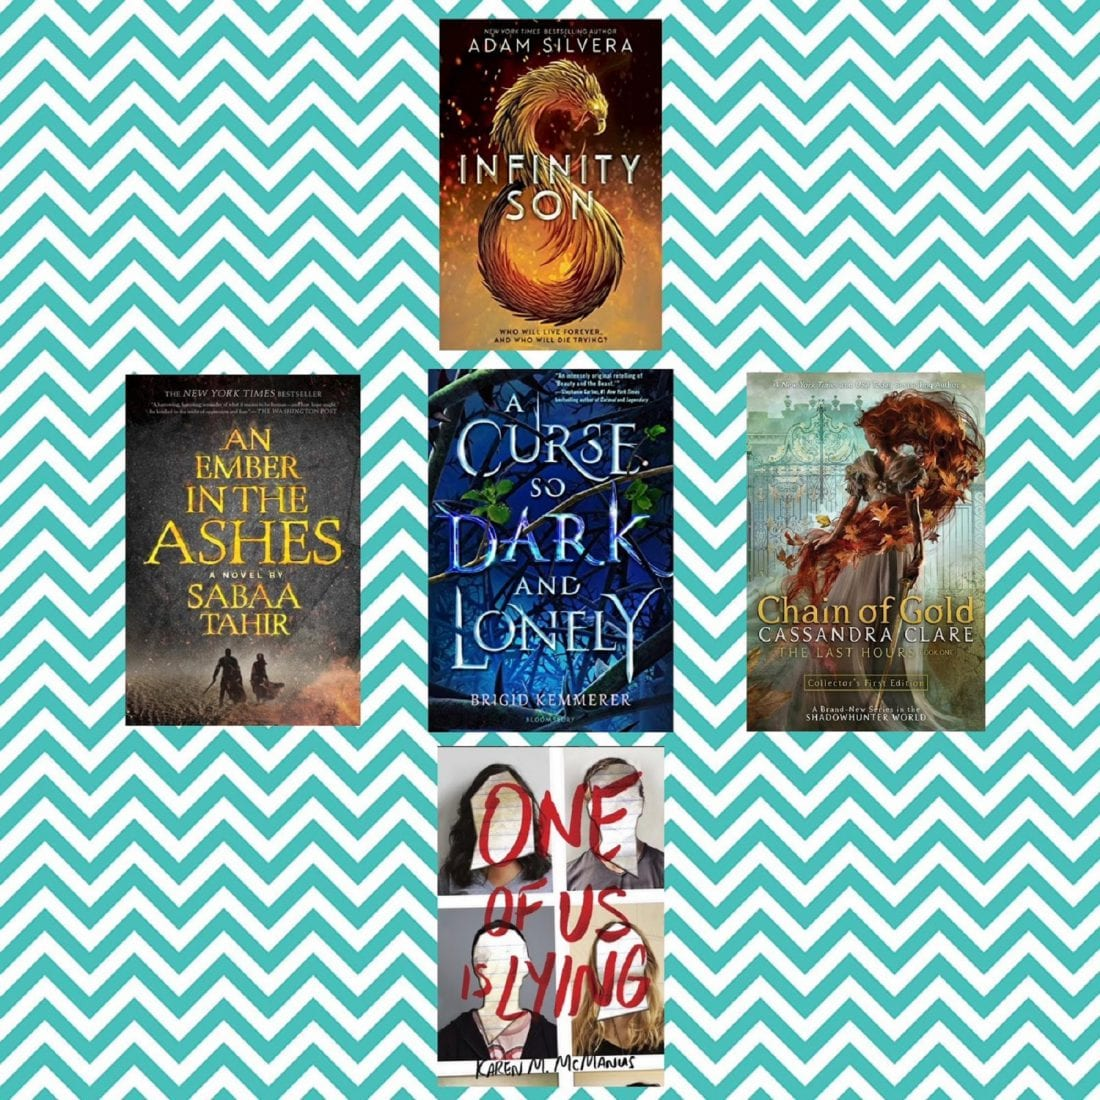 ALT TEXT: A Photo Collage of Different YA Series, An Ember in the Ashes by Sabaa Tahir, Chain of Gold by Cassandra Clare, One of Us Is Lying Karen M. McManus, A Curse So Dark and Lonely by Brigid Kemmerer, Infinity Son by Adam SIlvera YA Series Round Up